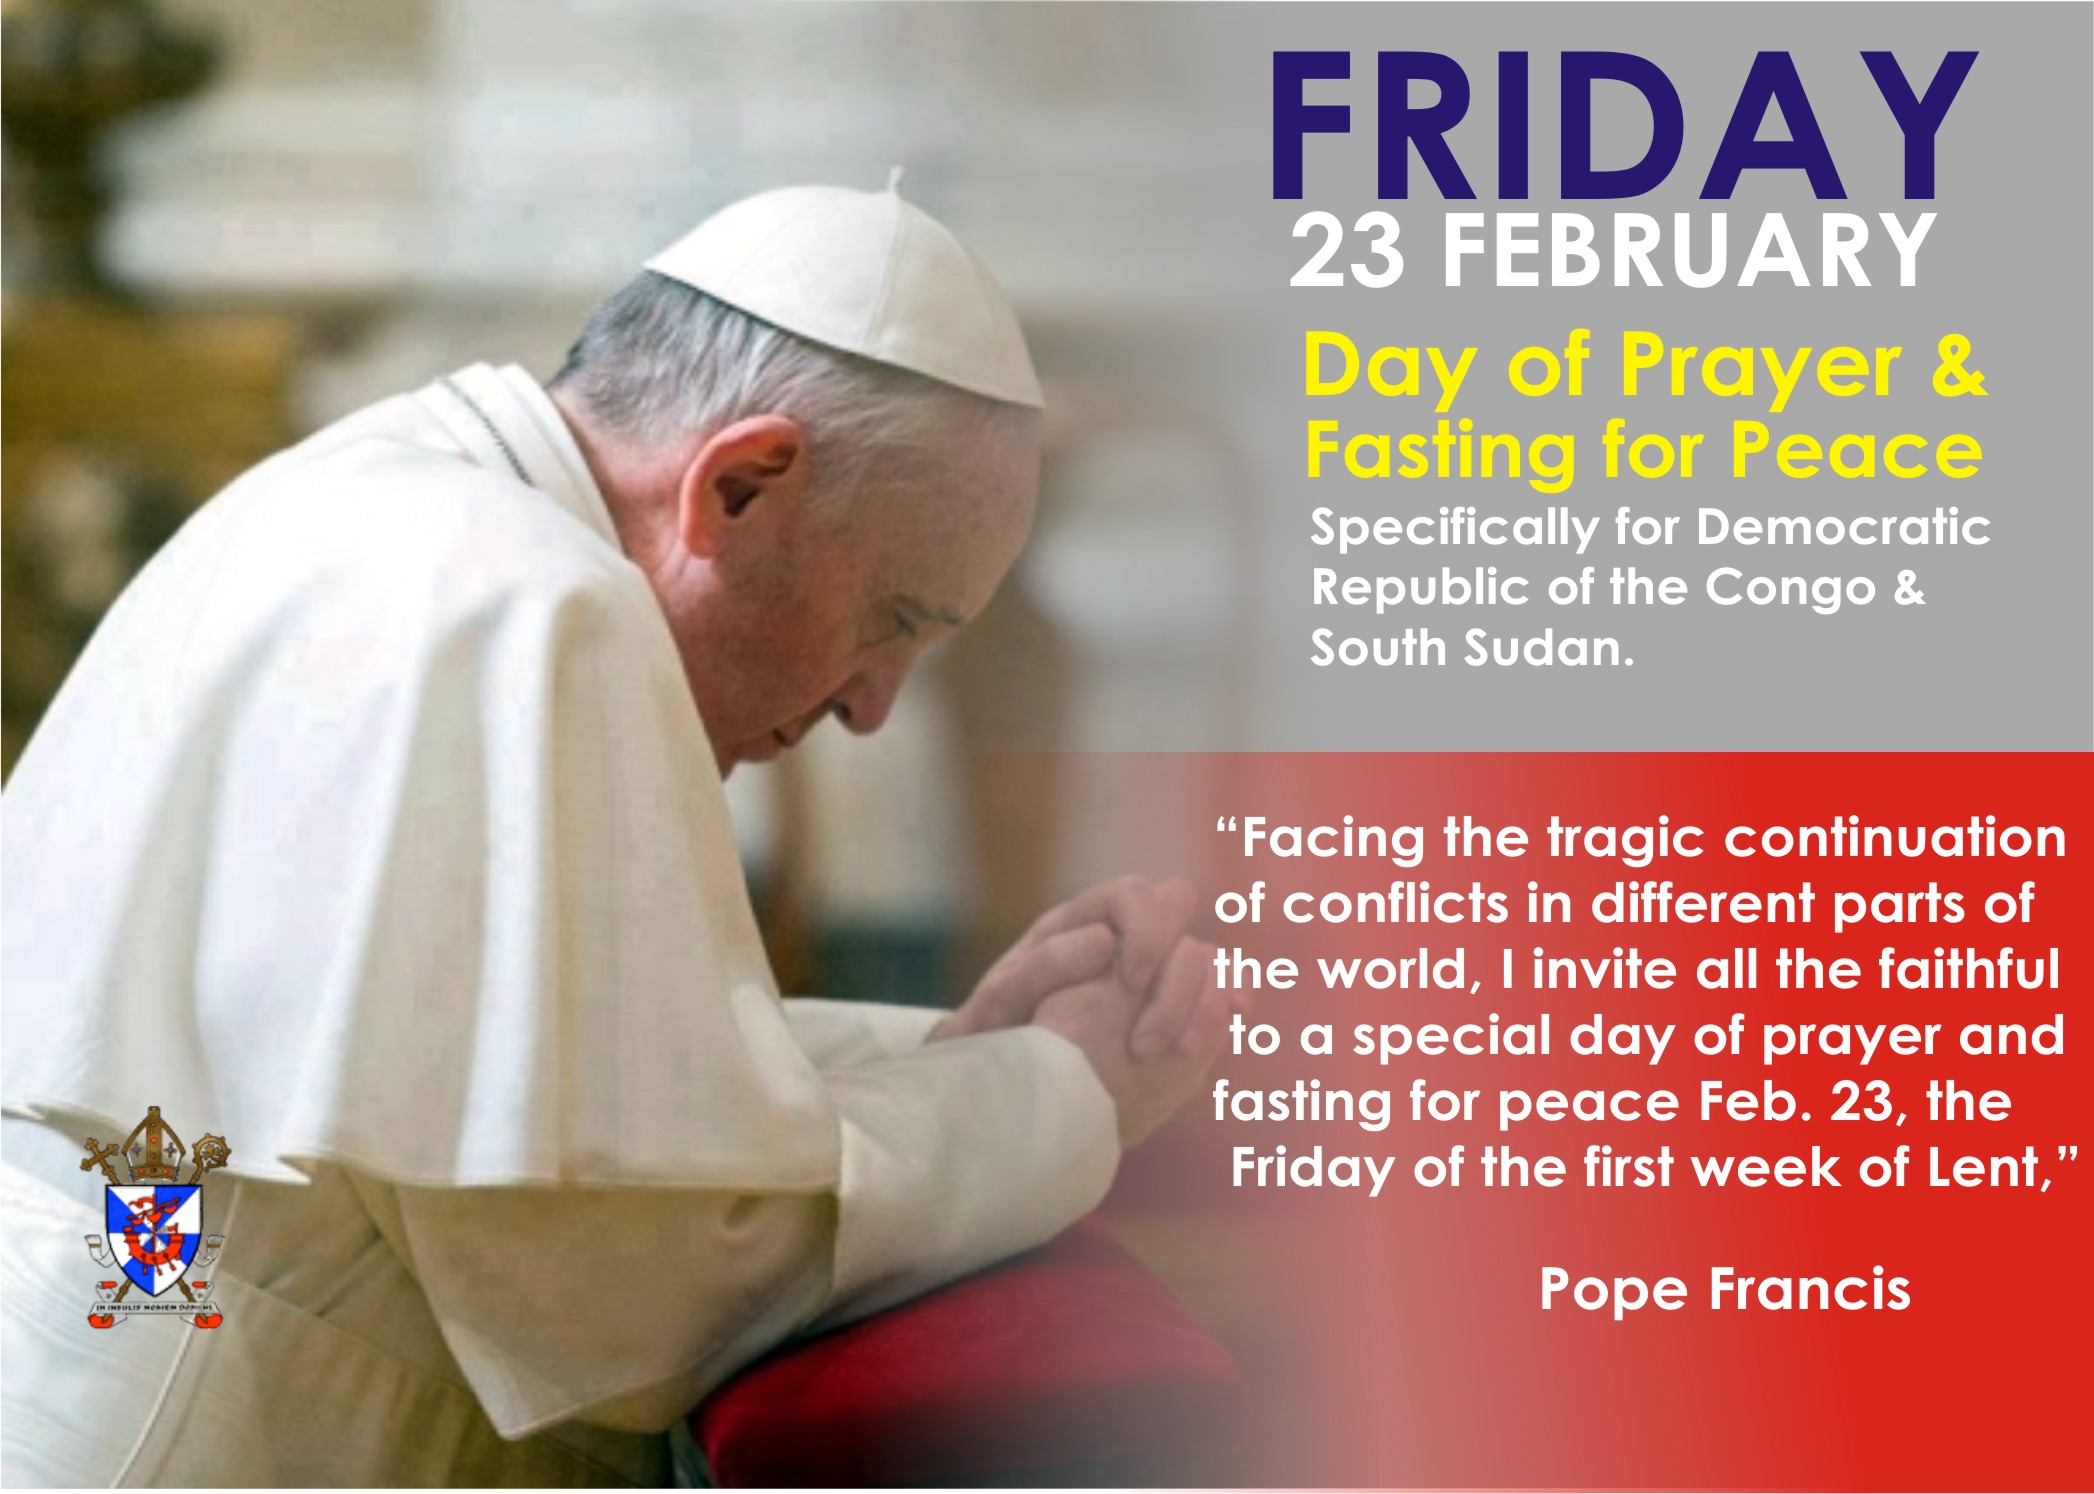 A day of prayer and fasting for peace